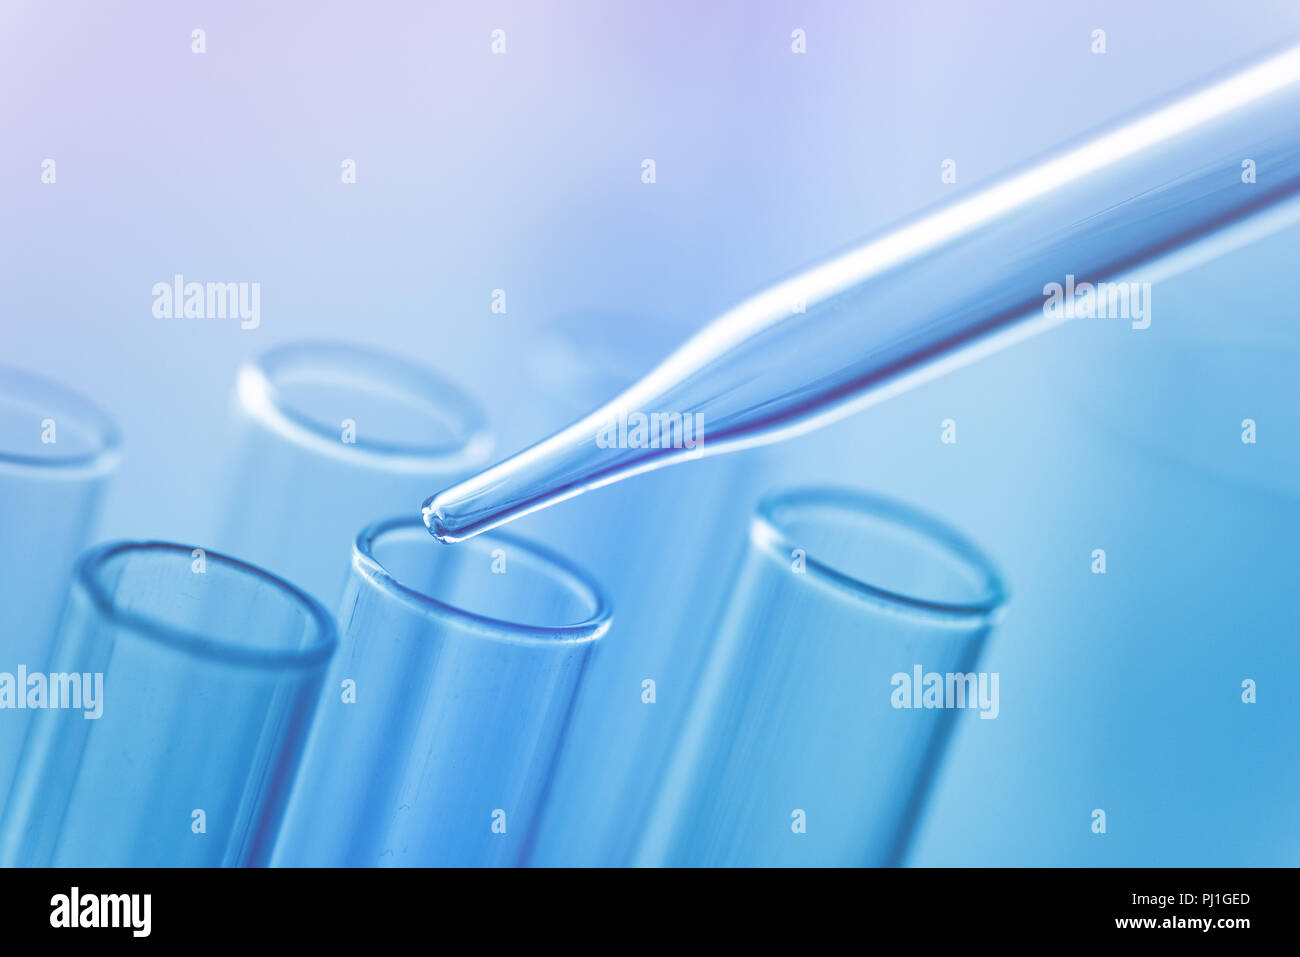 Medical science laboratory glassware, scientific equipment for researching in medicine and chemistry Stock Photo